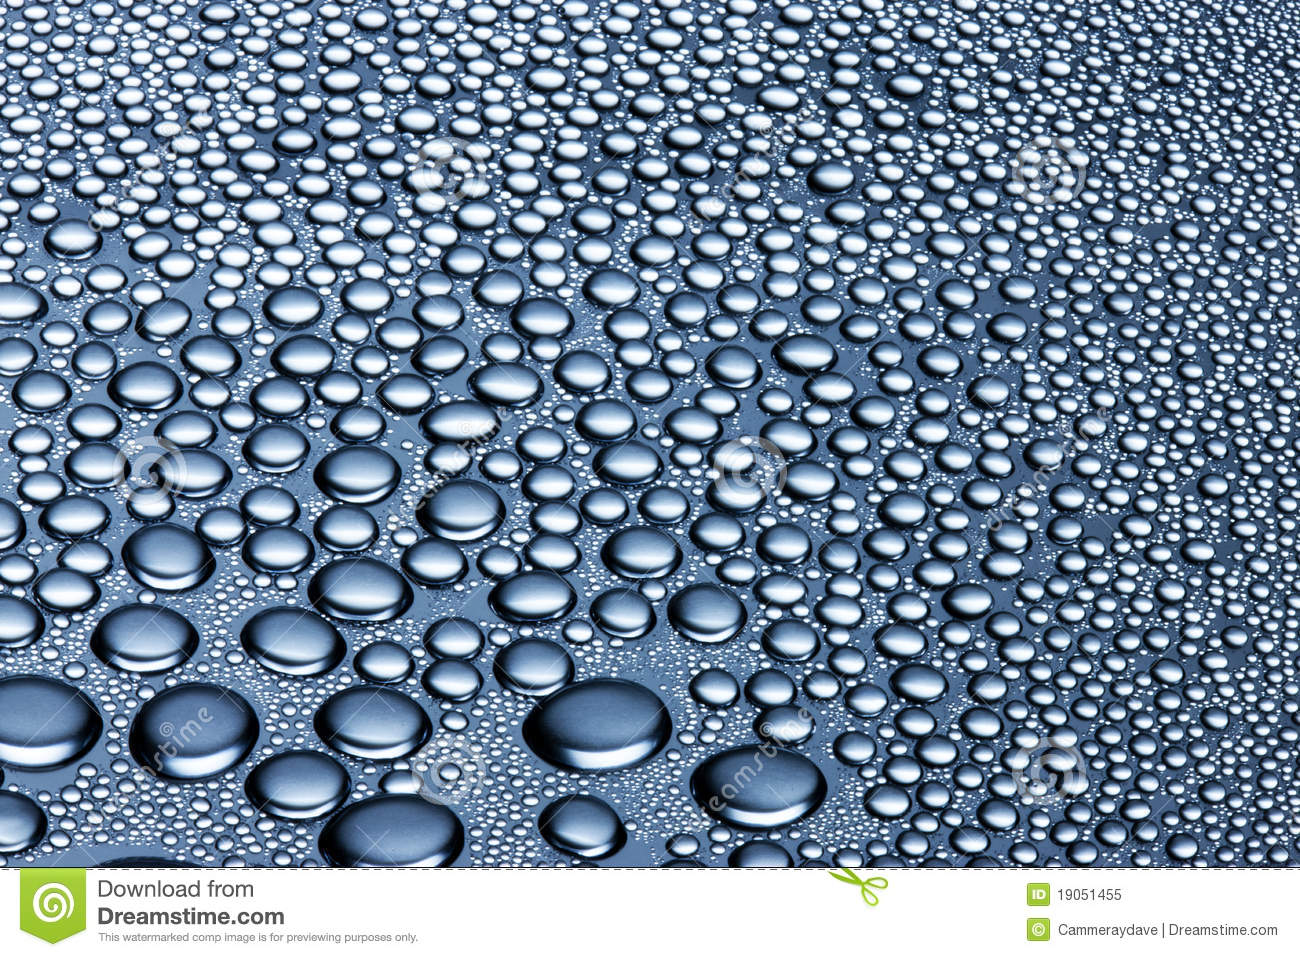 Nature Images 2mb: Abstract Water Drops Background Royalty Free Stock Photo